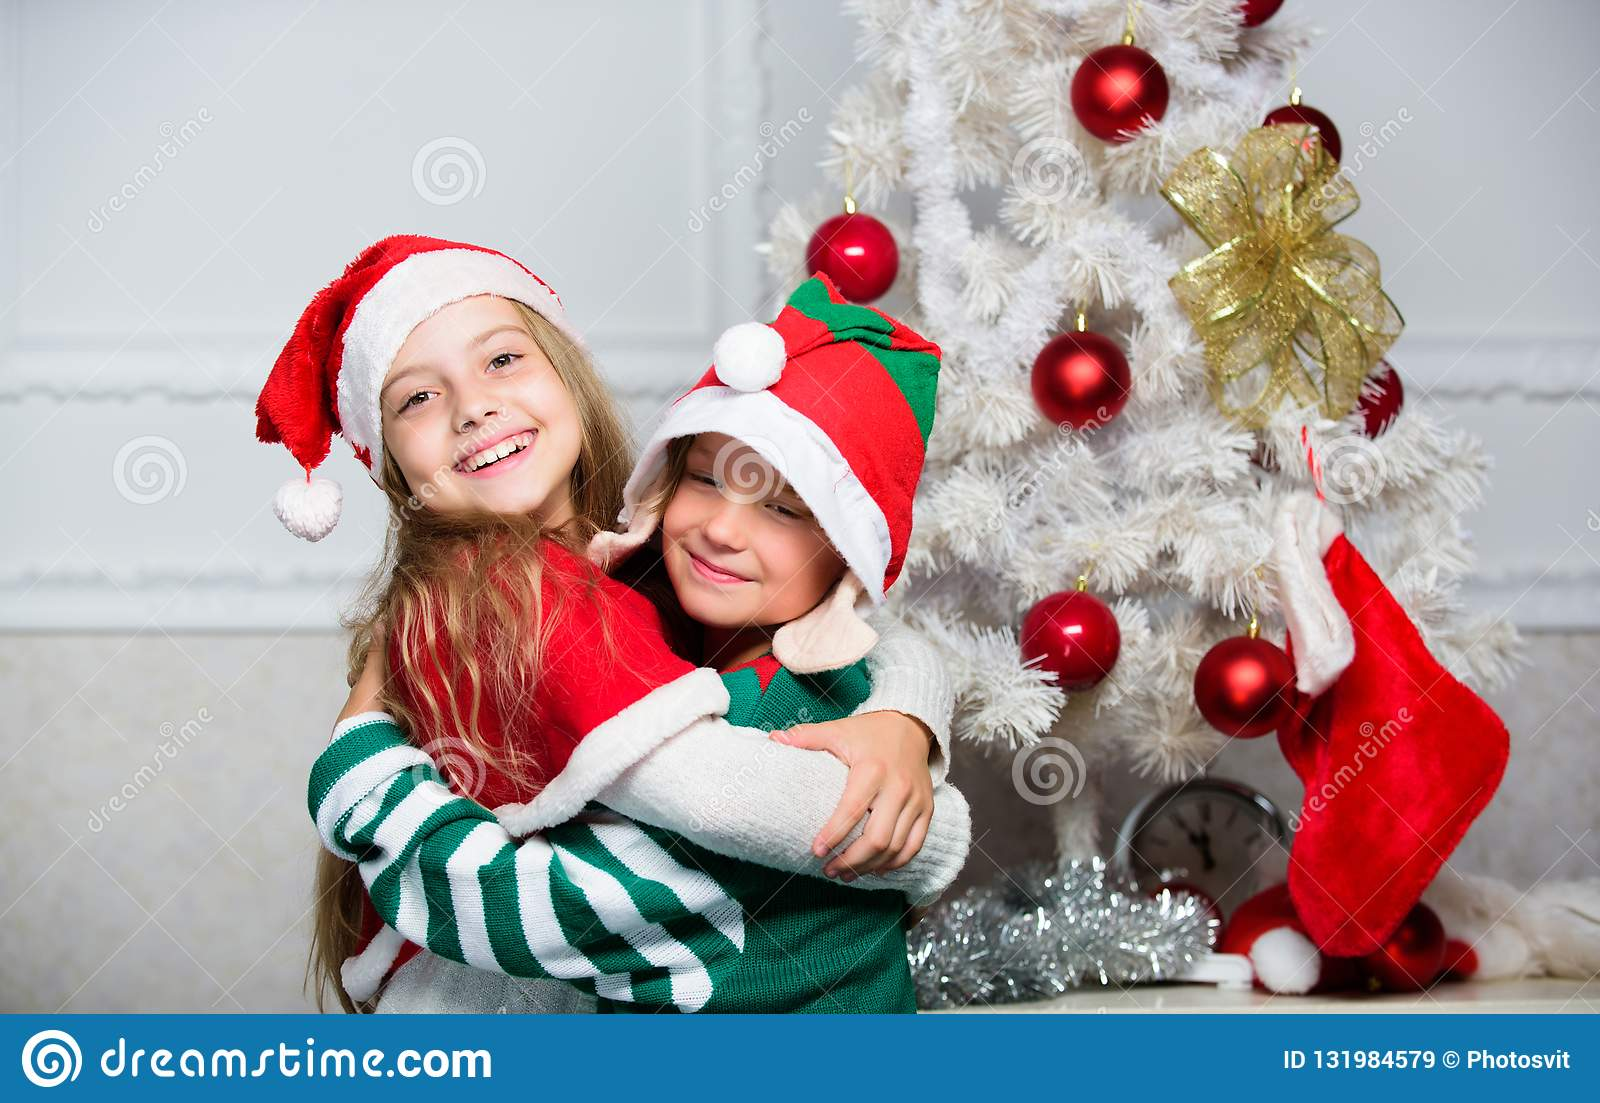 Merry Christmas Family.Merry Christmas Family Holiday Tradition Children Cheerful